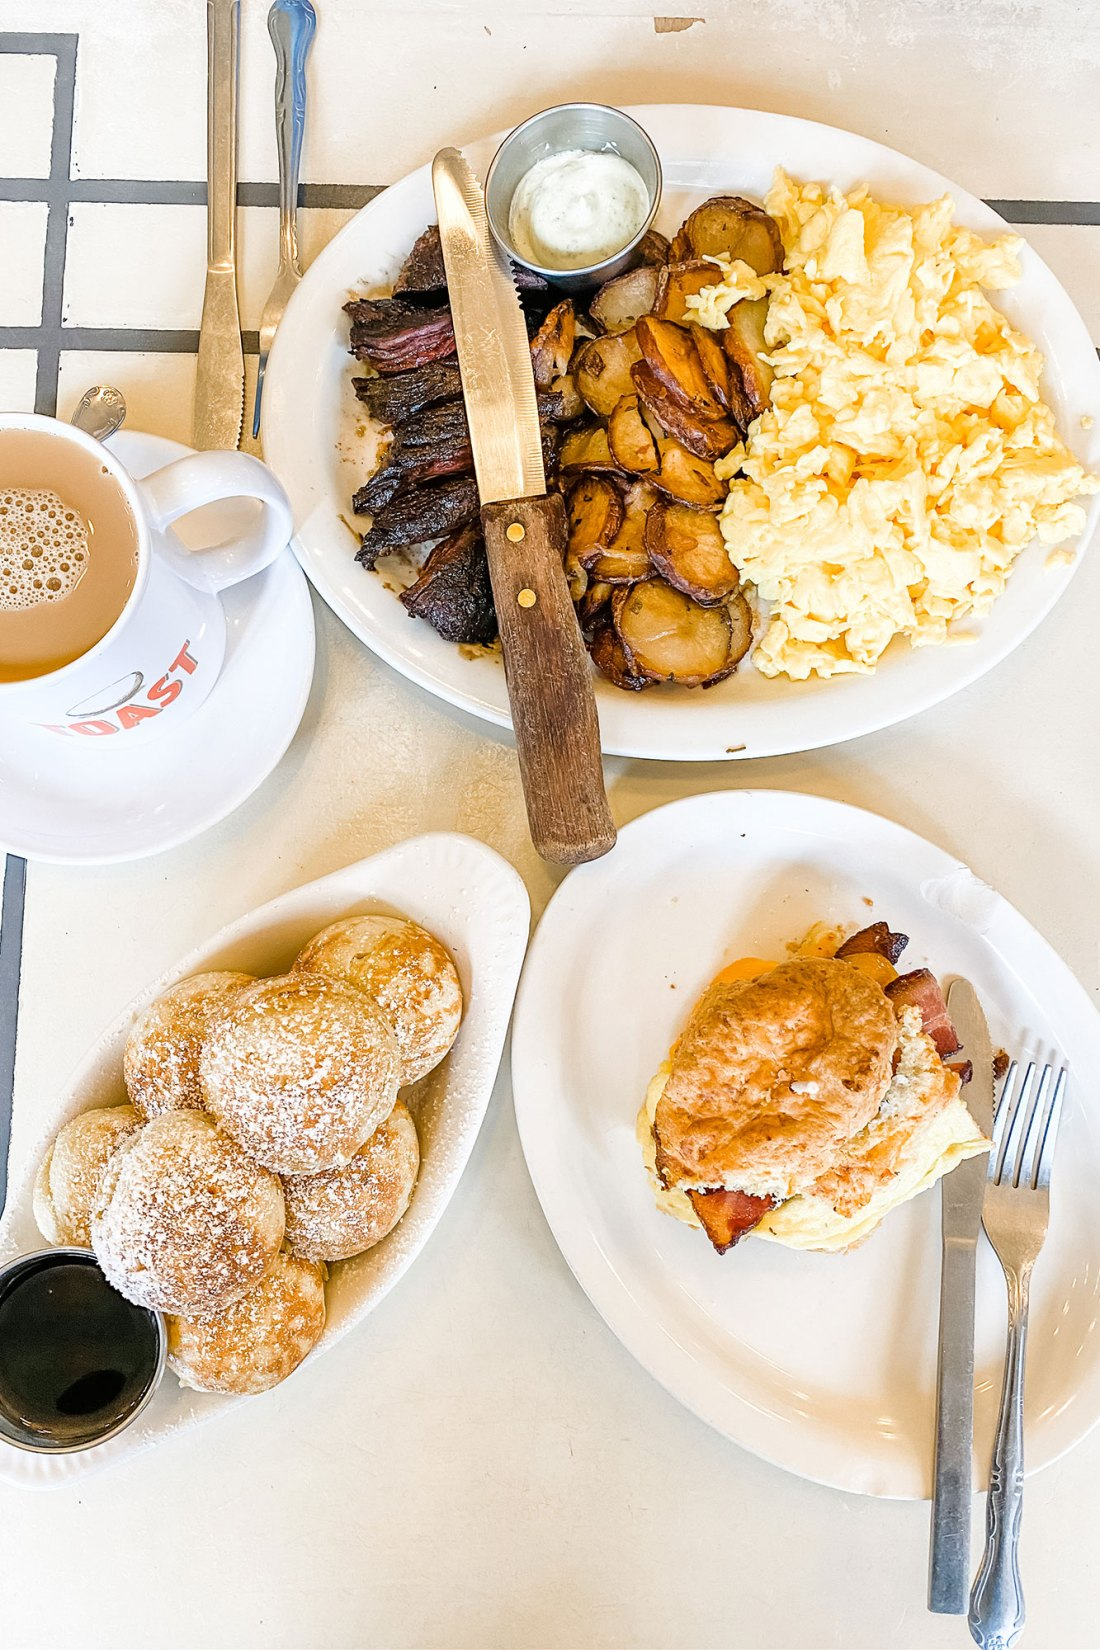 Breakfast dishes set out on table